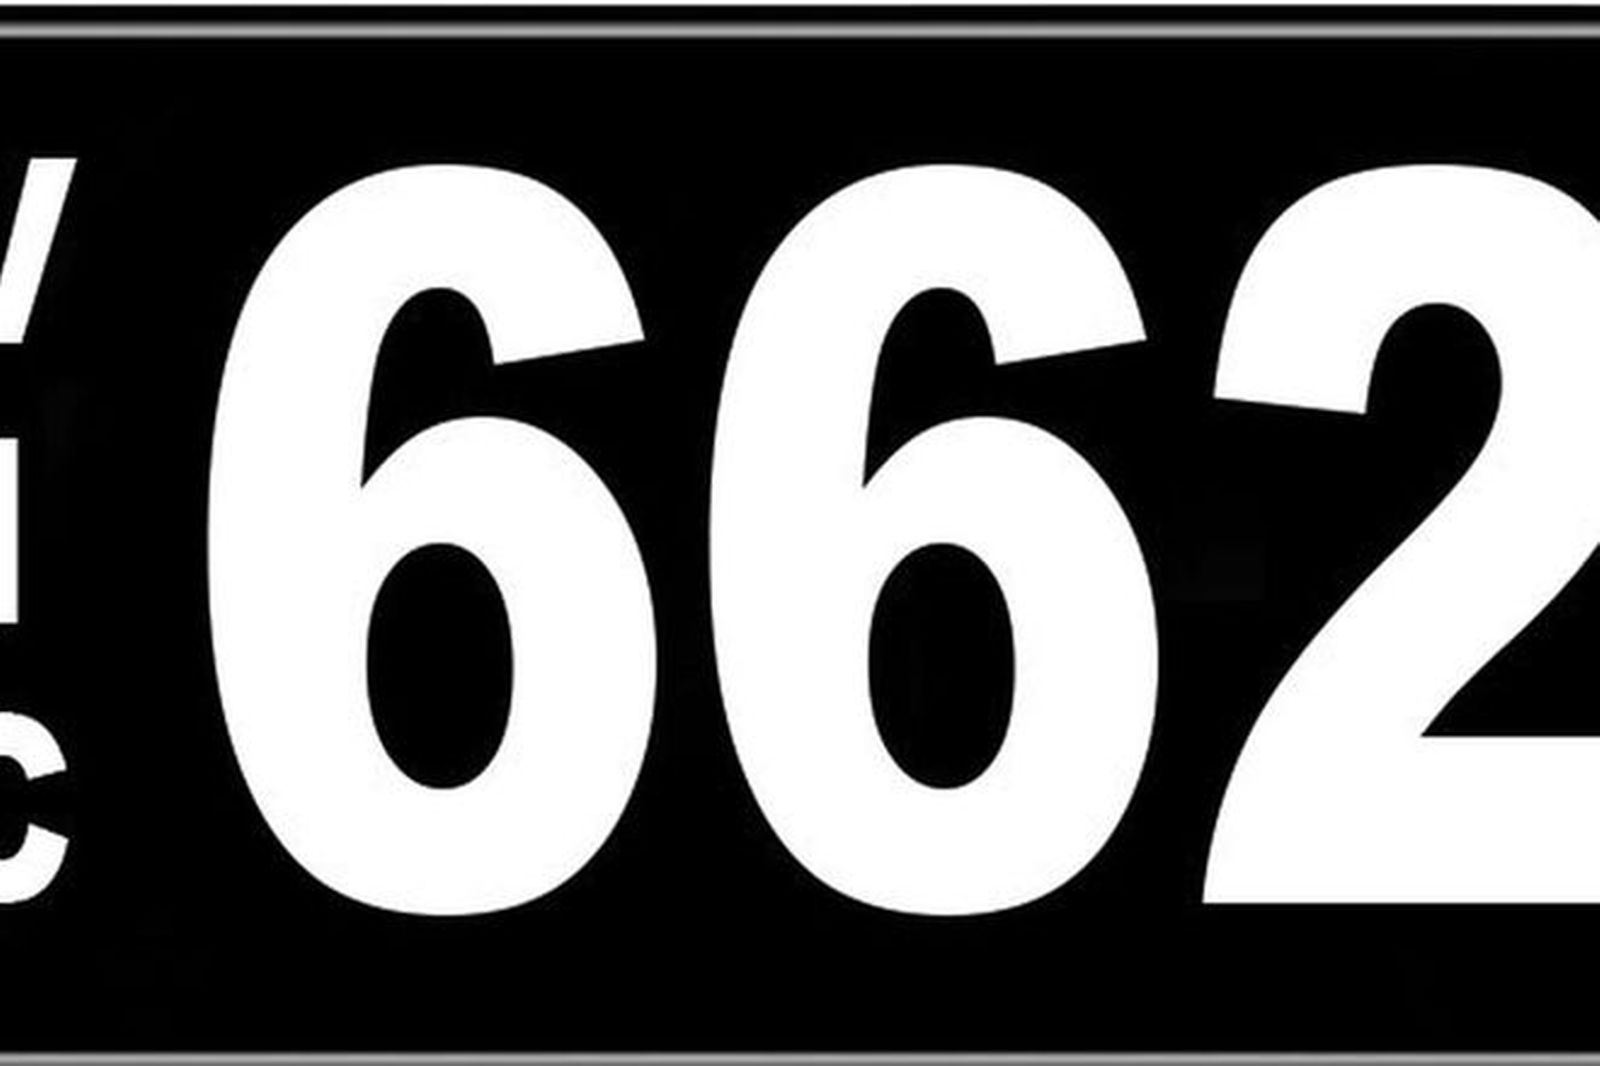 Number Plates - Victorian Numerical Number Plates '662'